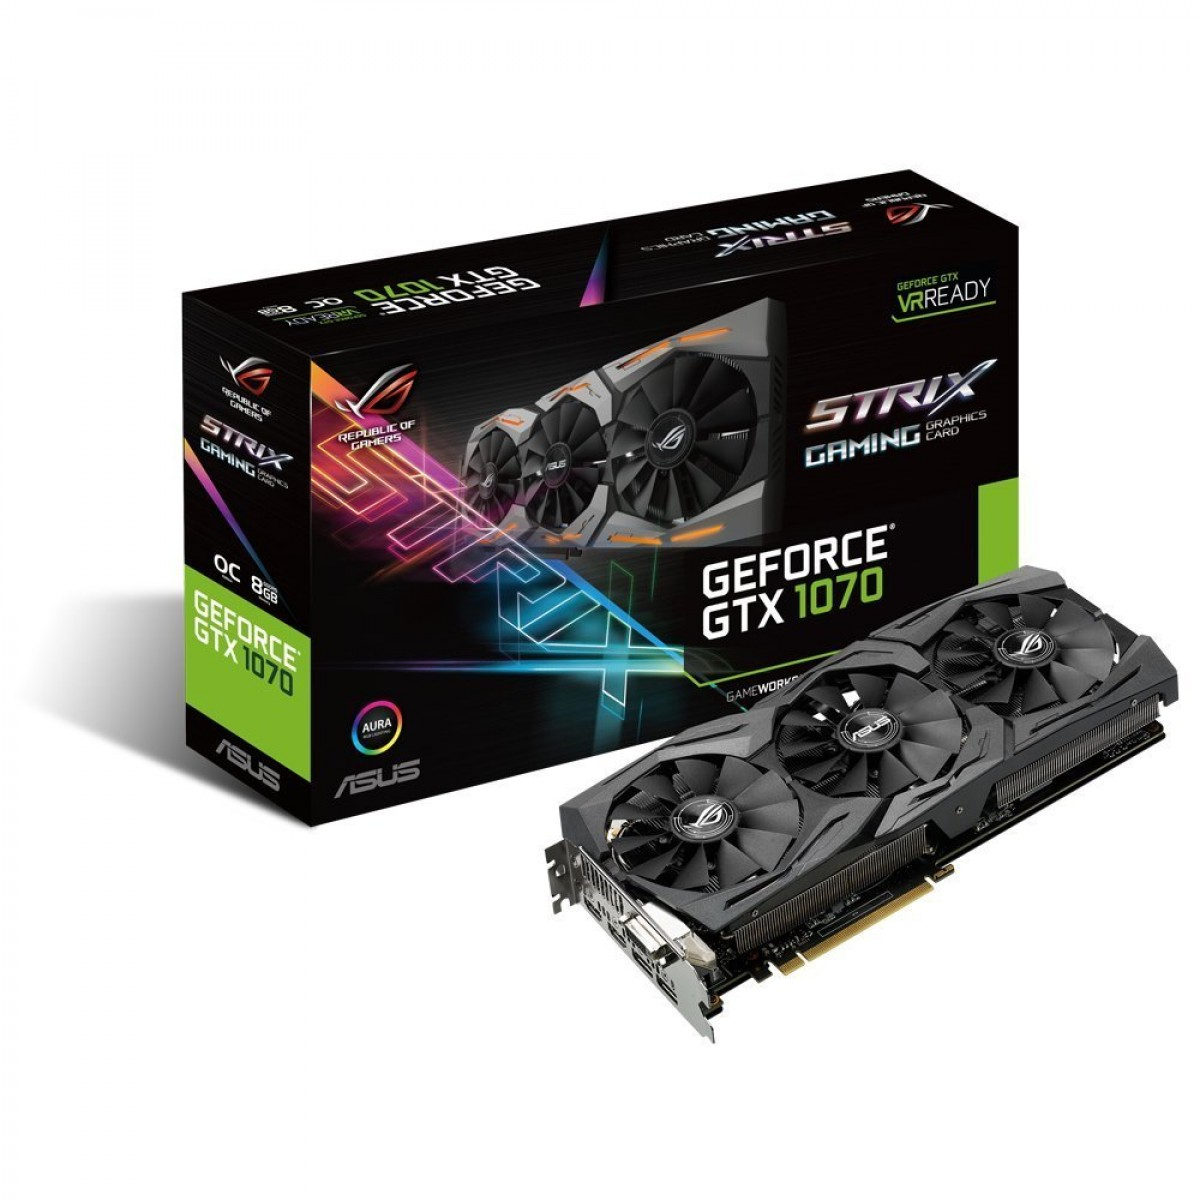 ASUS GTX1070 Strix OC 8GB DDR-5  Graphics Card